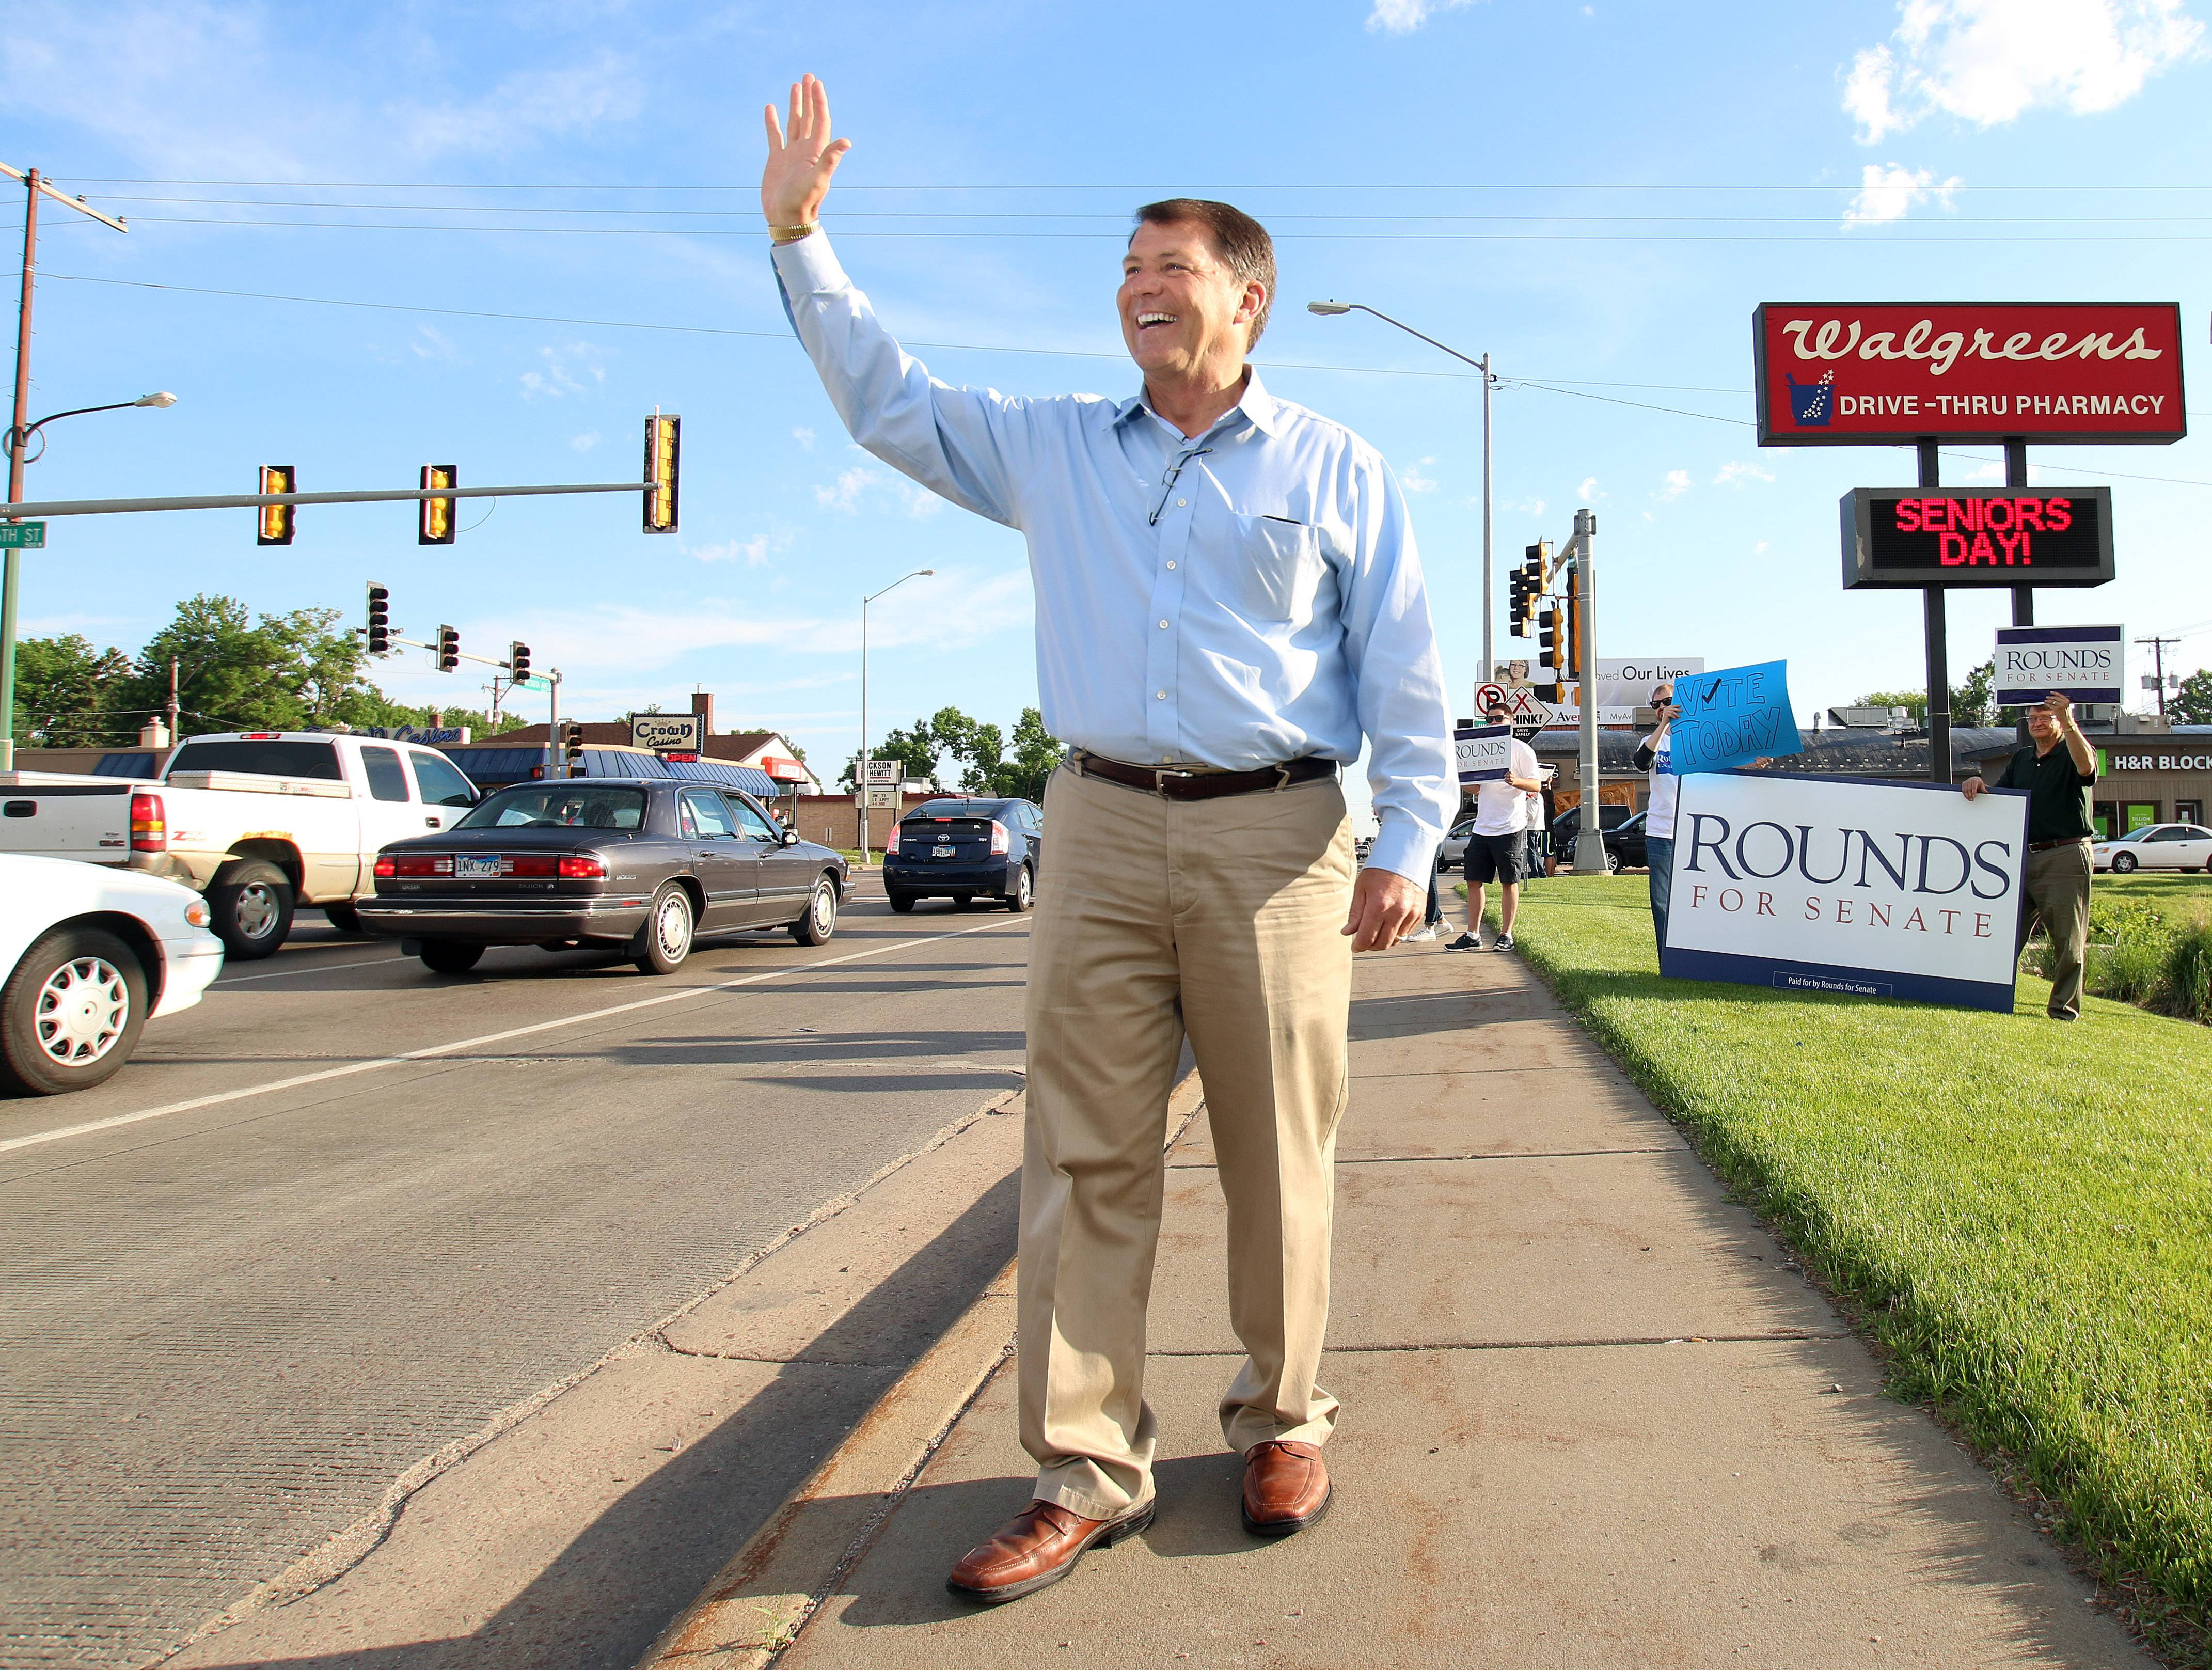 Former South Dakota Gov. Mike Rounds waves to motorists, as he campaigned Tuesday in Sioux Falls, S.D. Rounds won the Republican nomination for the U.S. Senate — and instantly became the favorite to pick up a seat for the GOP in its drive to capture a majority this fall.